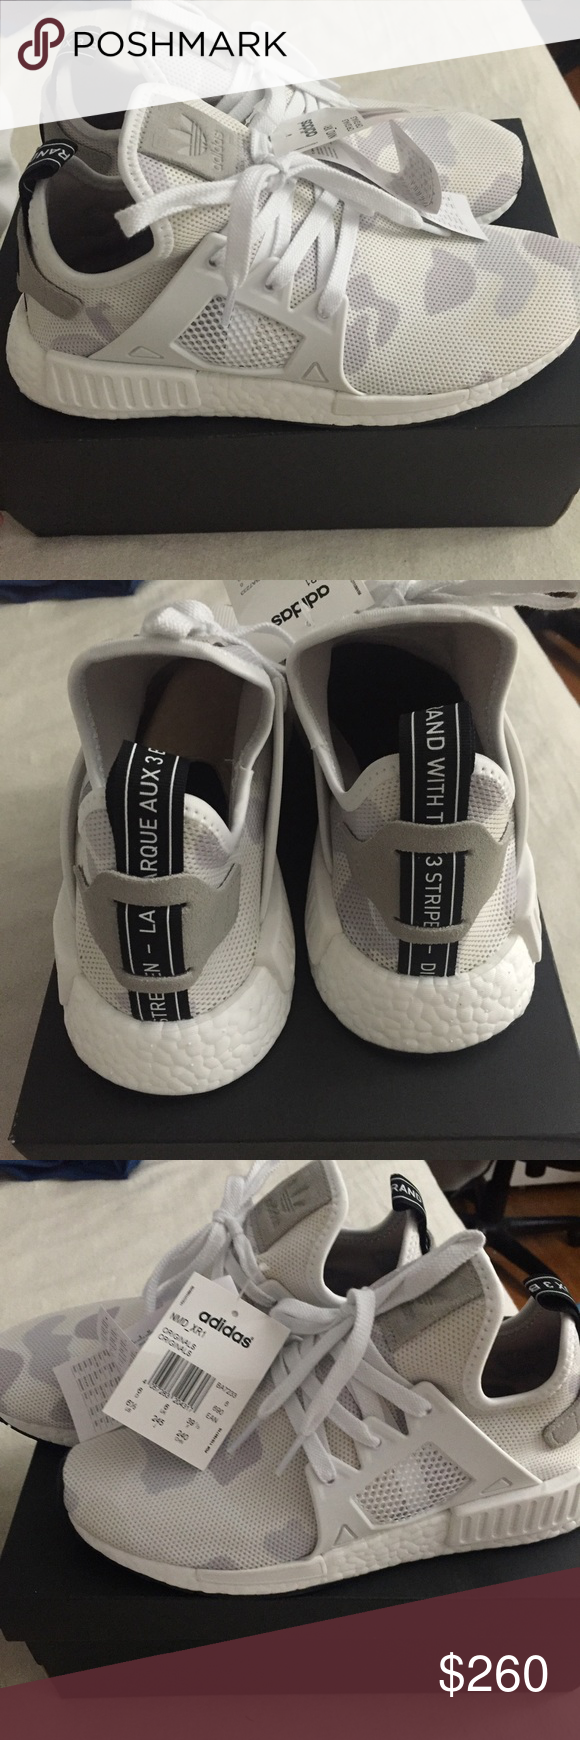 Size 11 nmd xr1 gum black and white Men's Shoes